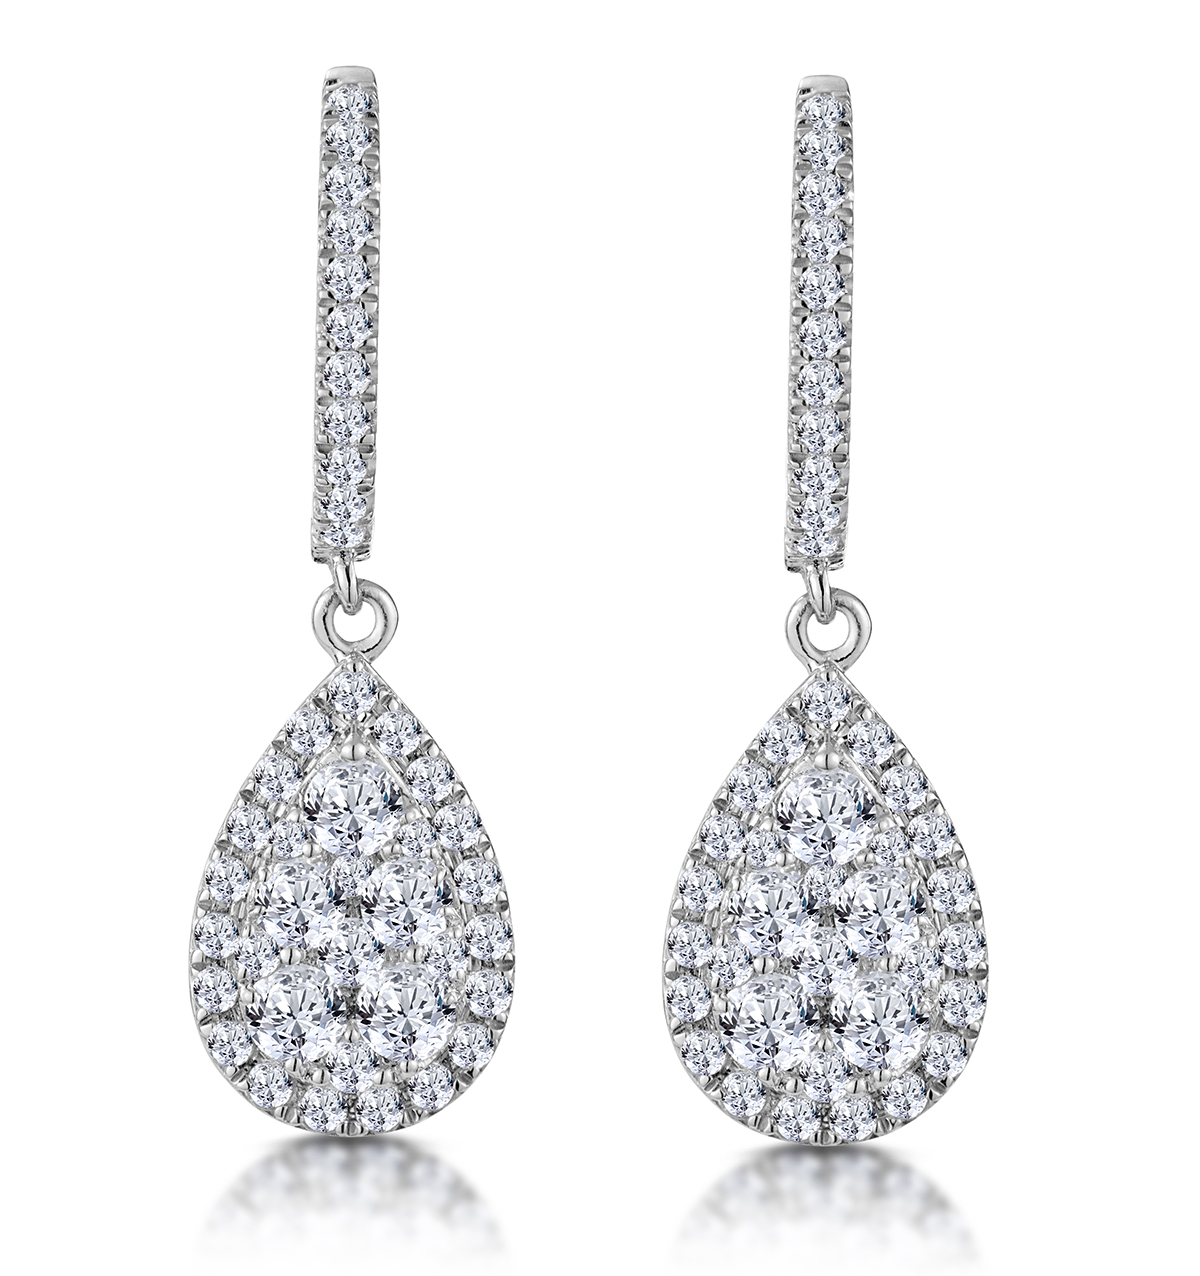 DIAMOND PEAR CLUSTER EARRINGS PAVE 1.5CT SET IN 18K WHITE GOLD